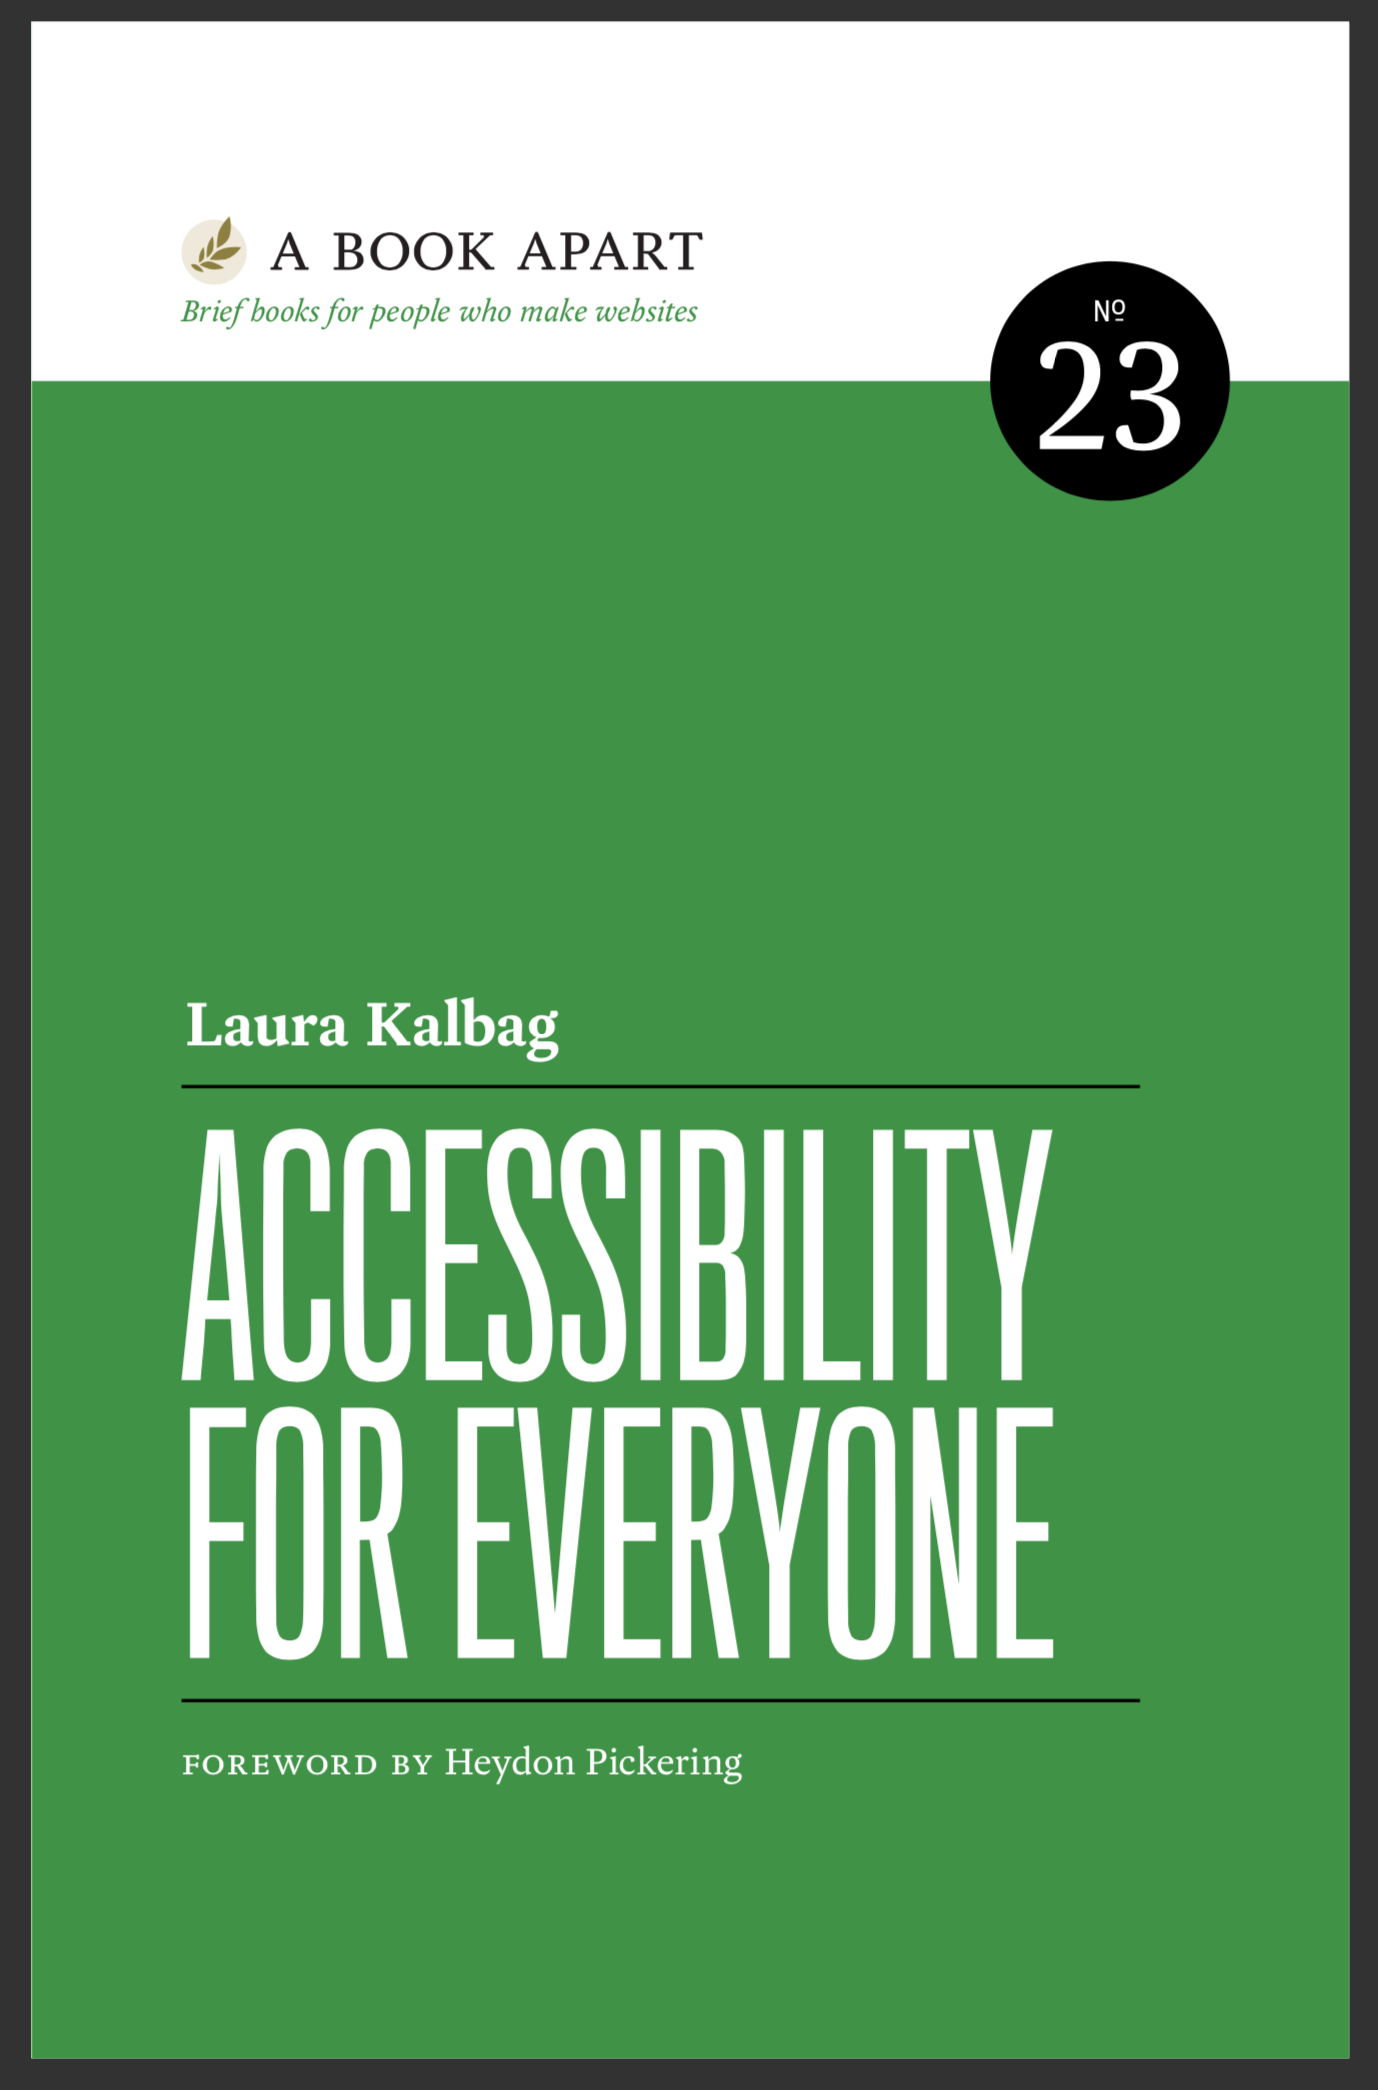 Accessibility for Everyone by Heydon Pickering